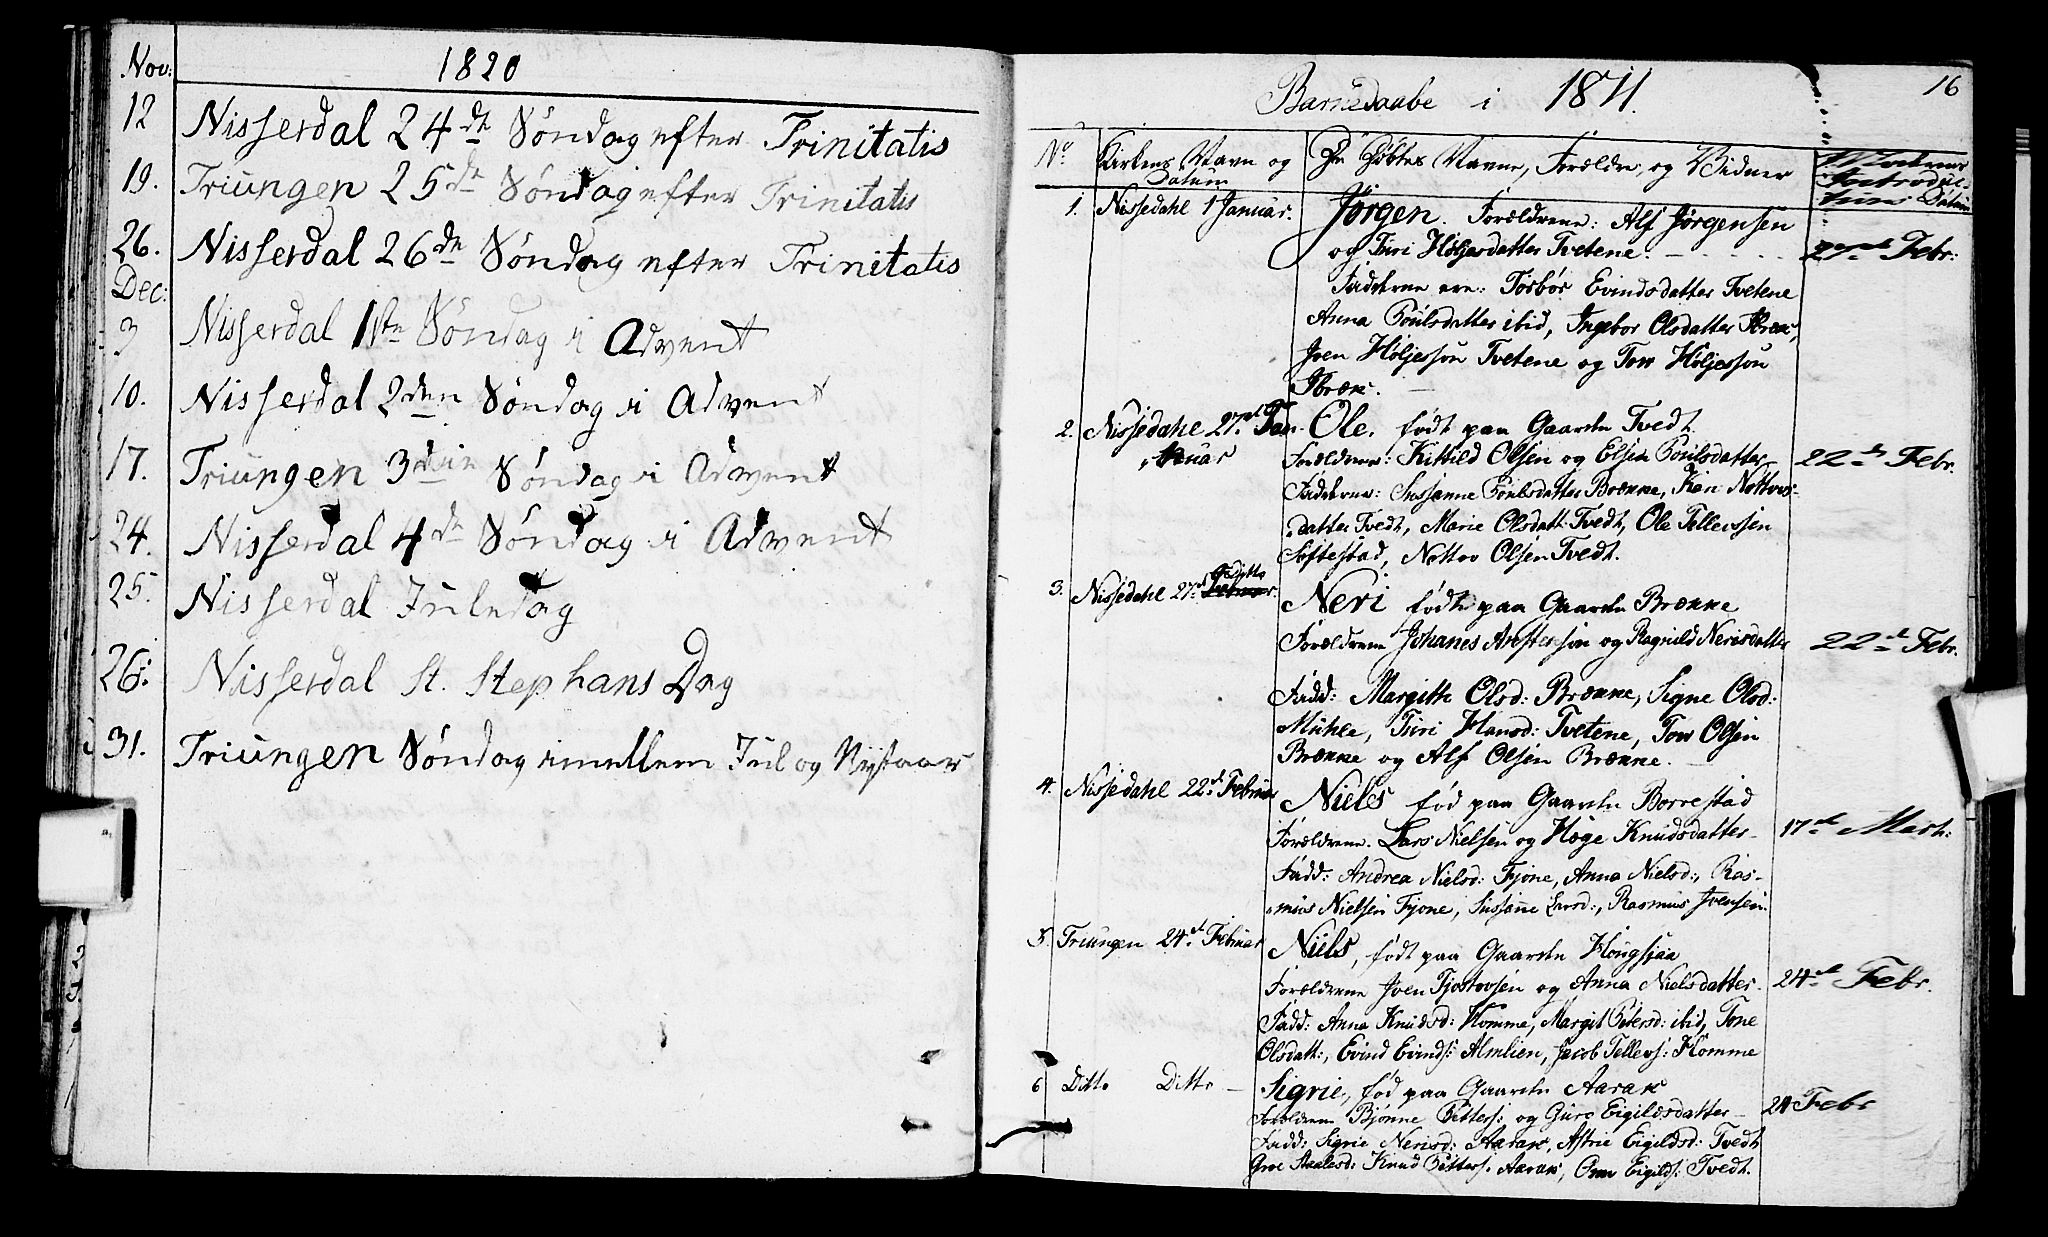 SAKO, Nissedal kirkebøker, F/Fa/L0001: Parish register (official) no. I 1, 1811-1814, p. 16